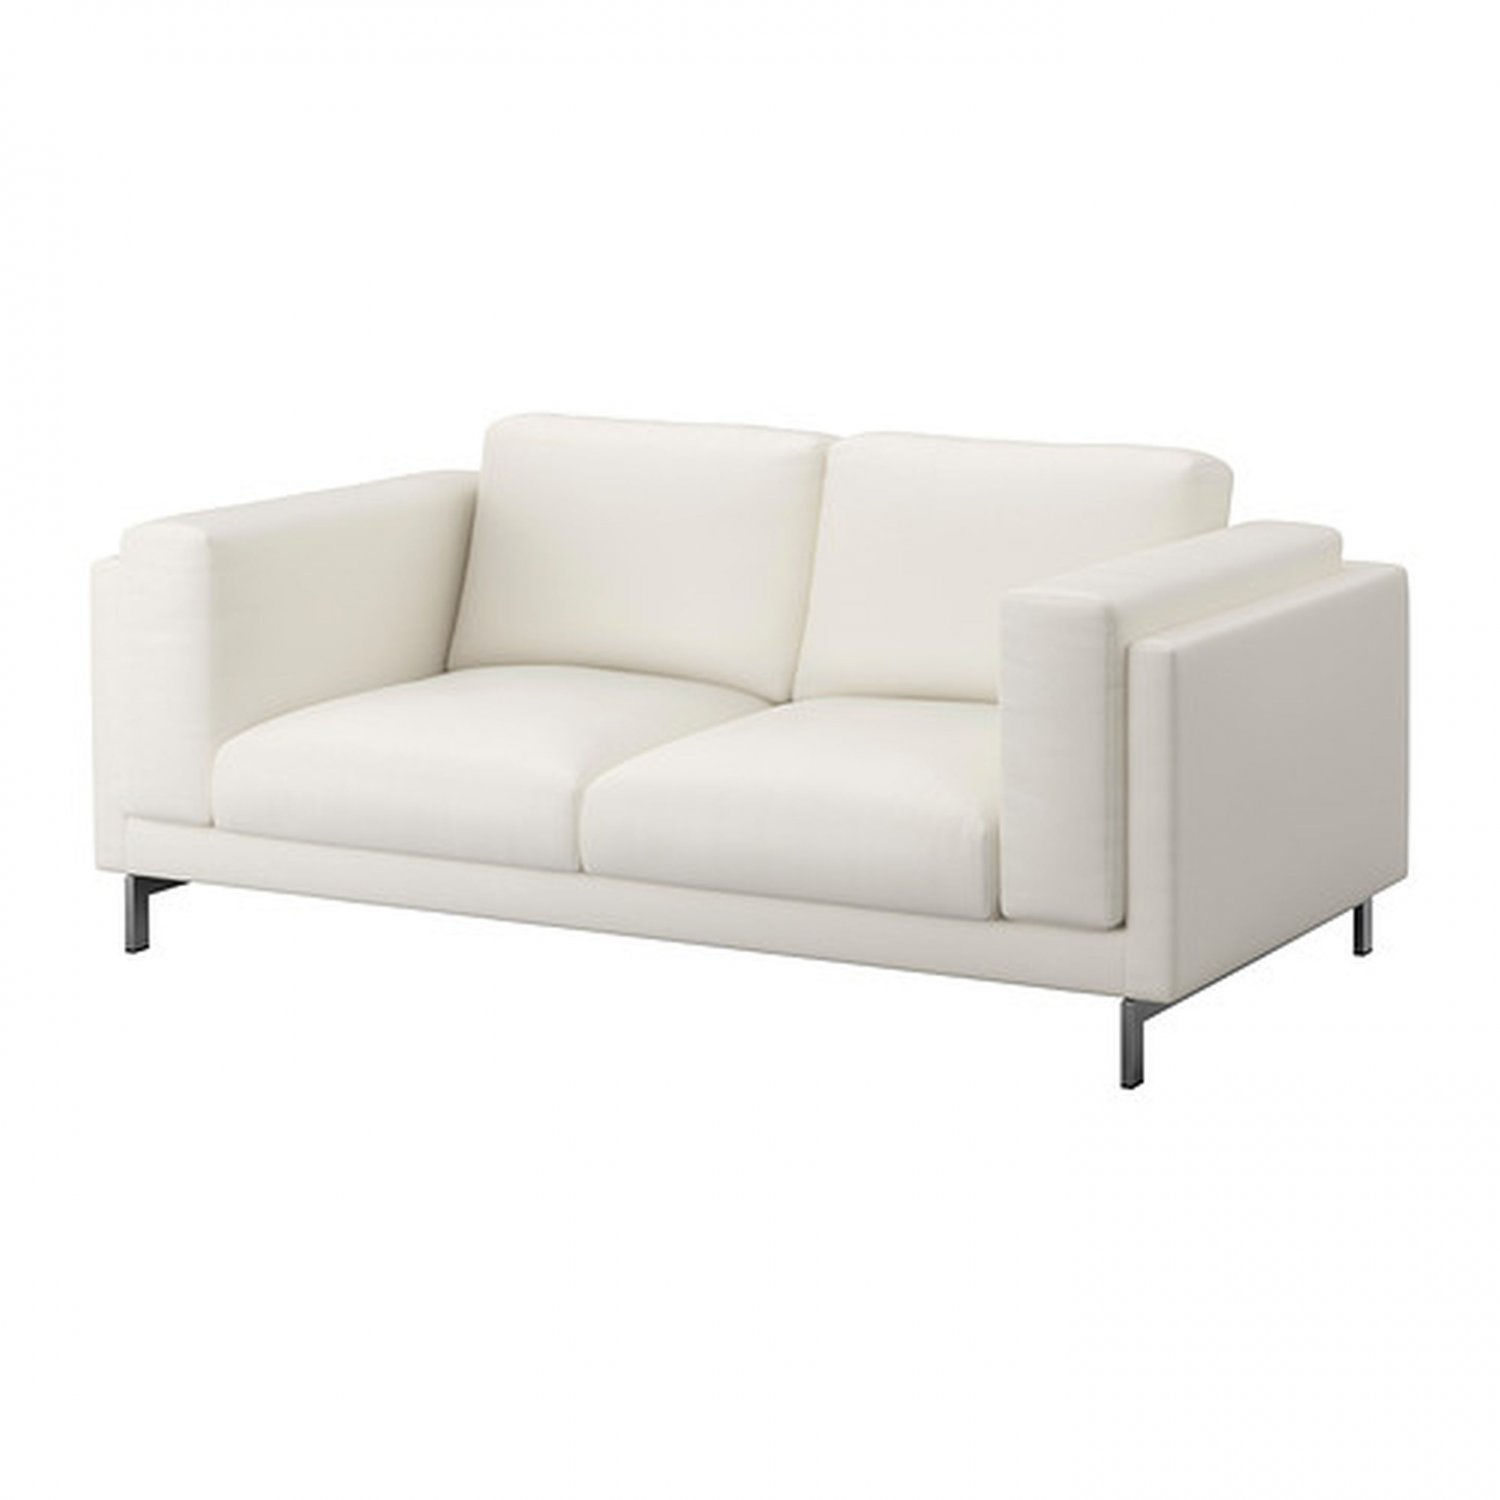 Ikea nockeby 2 seat sofa slipcover loveseat cover risane for White linen sectional sofa